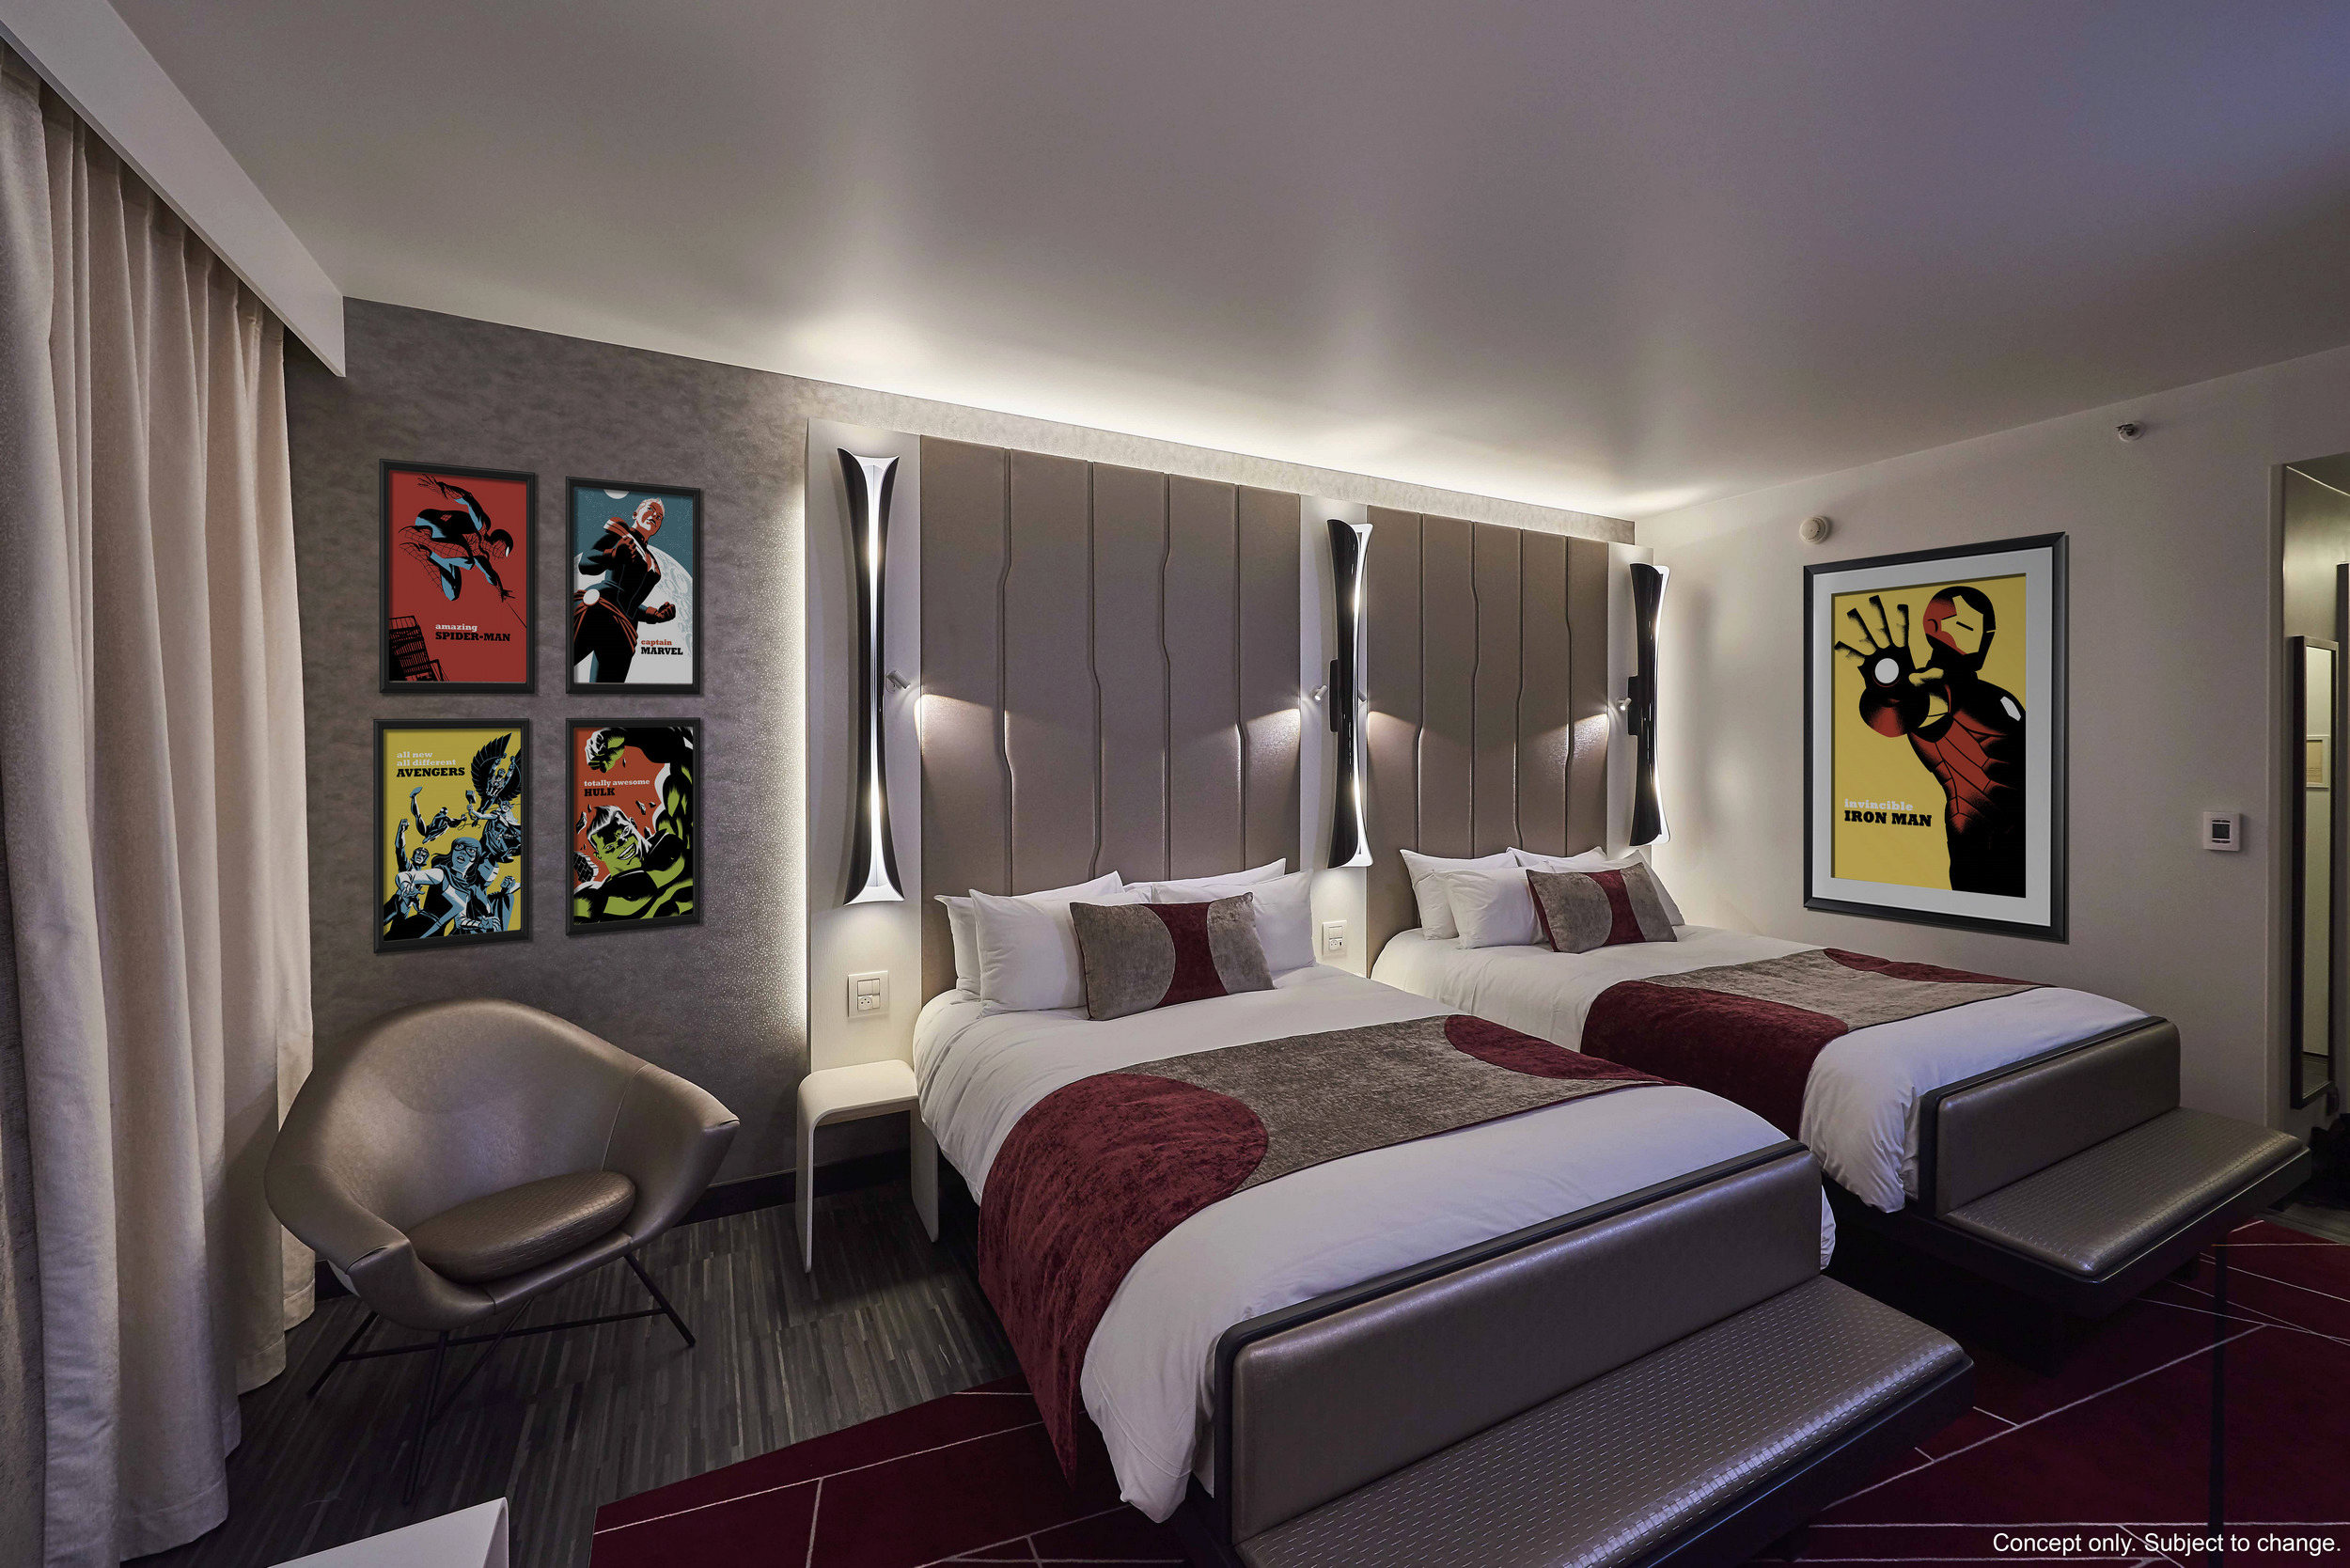 Disney's Hotel New York - The Art of Marvel 04a_st10